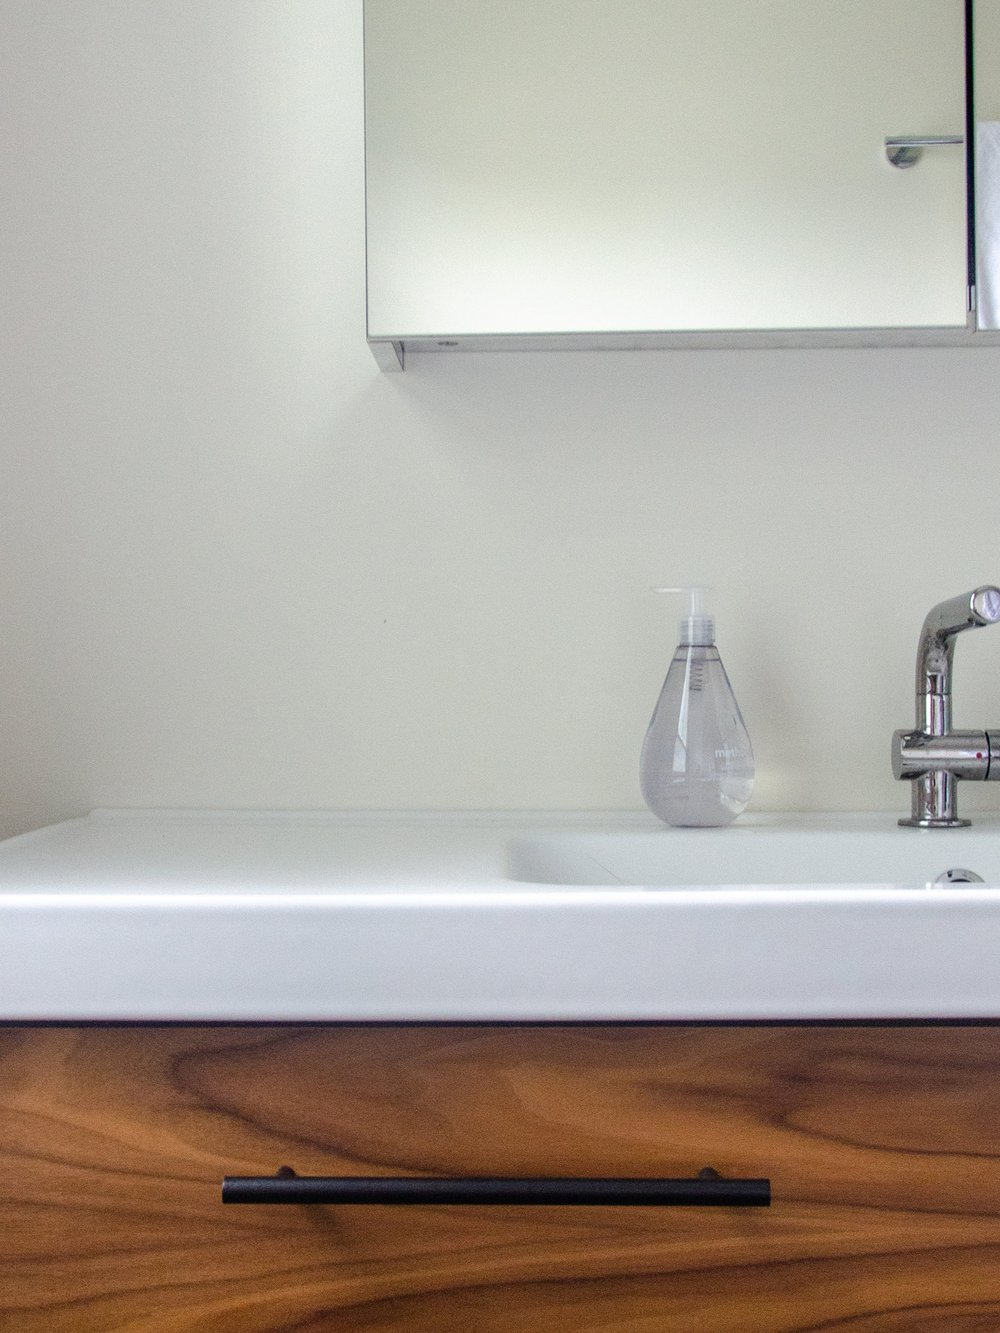 Ikea Godmorgon Bathroom Vanity and Mirror: Our Review — Salt & Rook